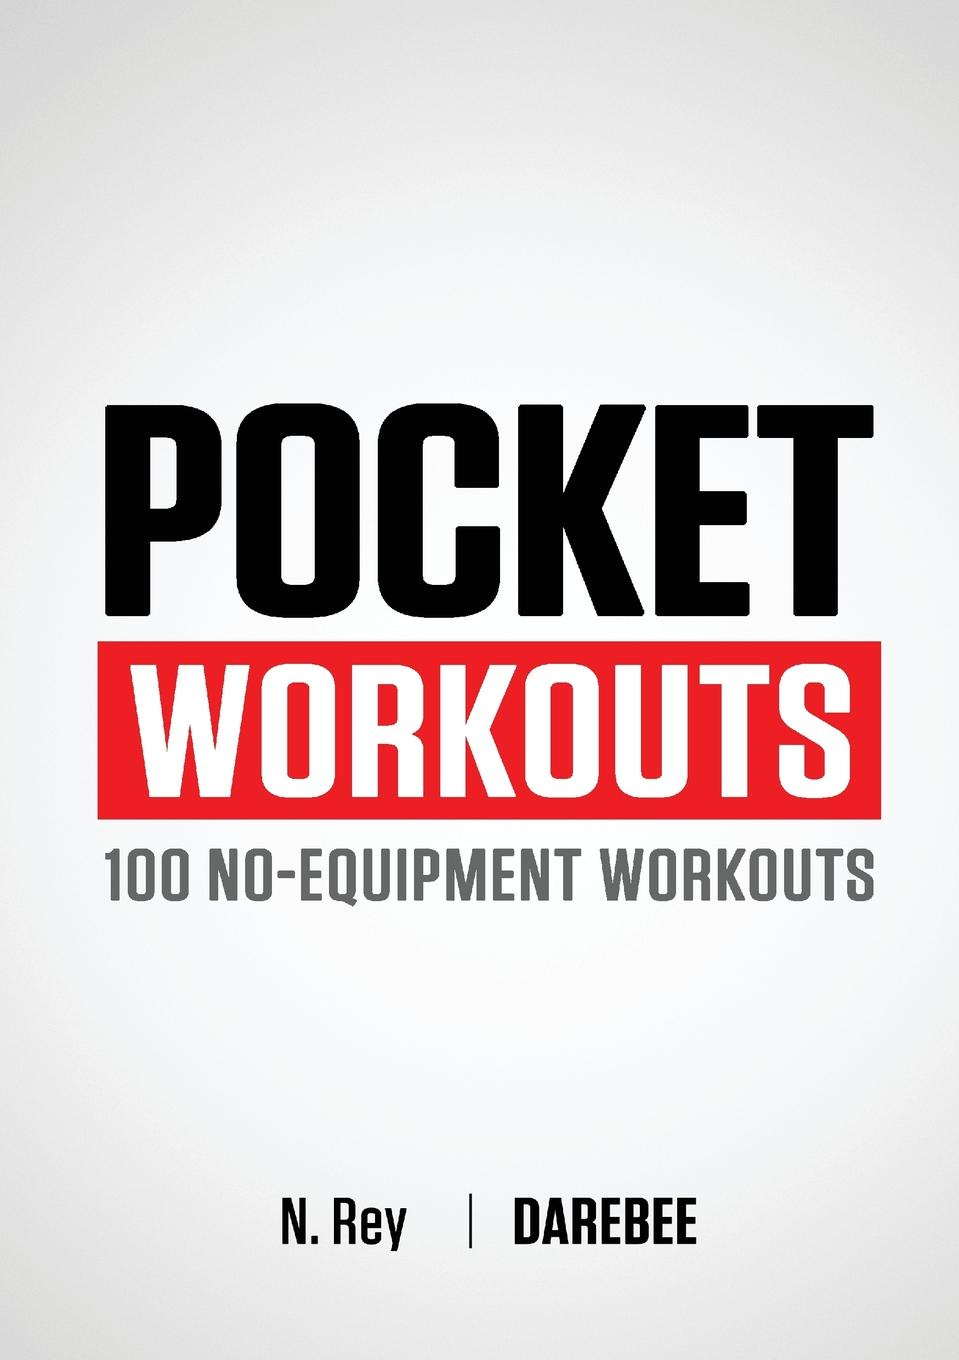 N. Rey Pocket Workouts - 100 no-equipment workouts. Train any time, anywhere without a gym or special equipment